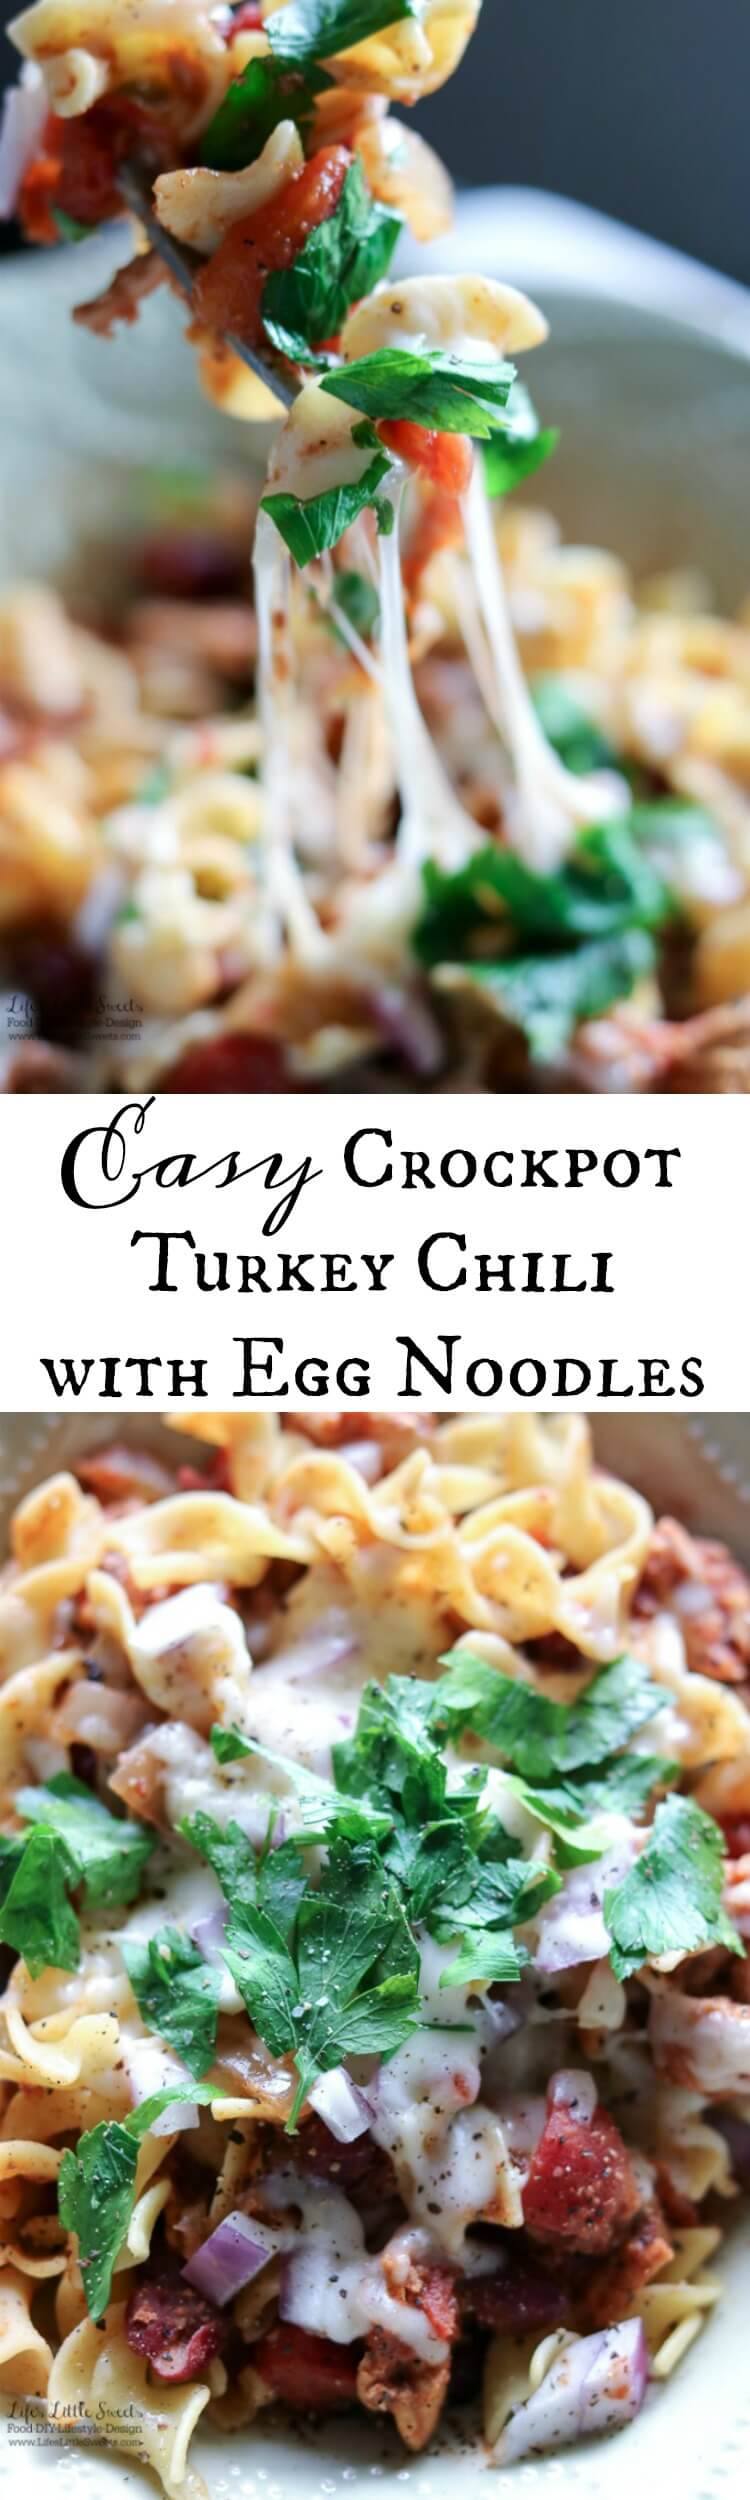 This Easy Crock-Pot Turkey Chili with Egg Noodles recipe is perfect for when you want hot comfort food that satisfies every food group. Let your Crock-Pot/slow cooker do all the work for you!